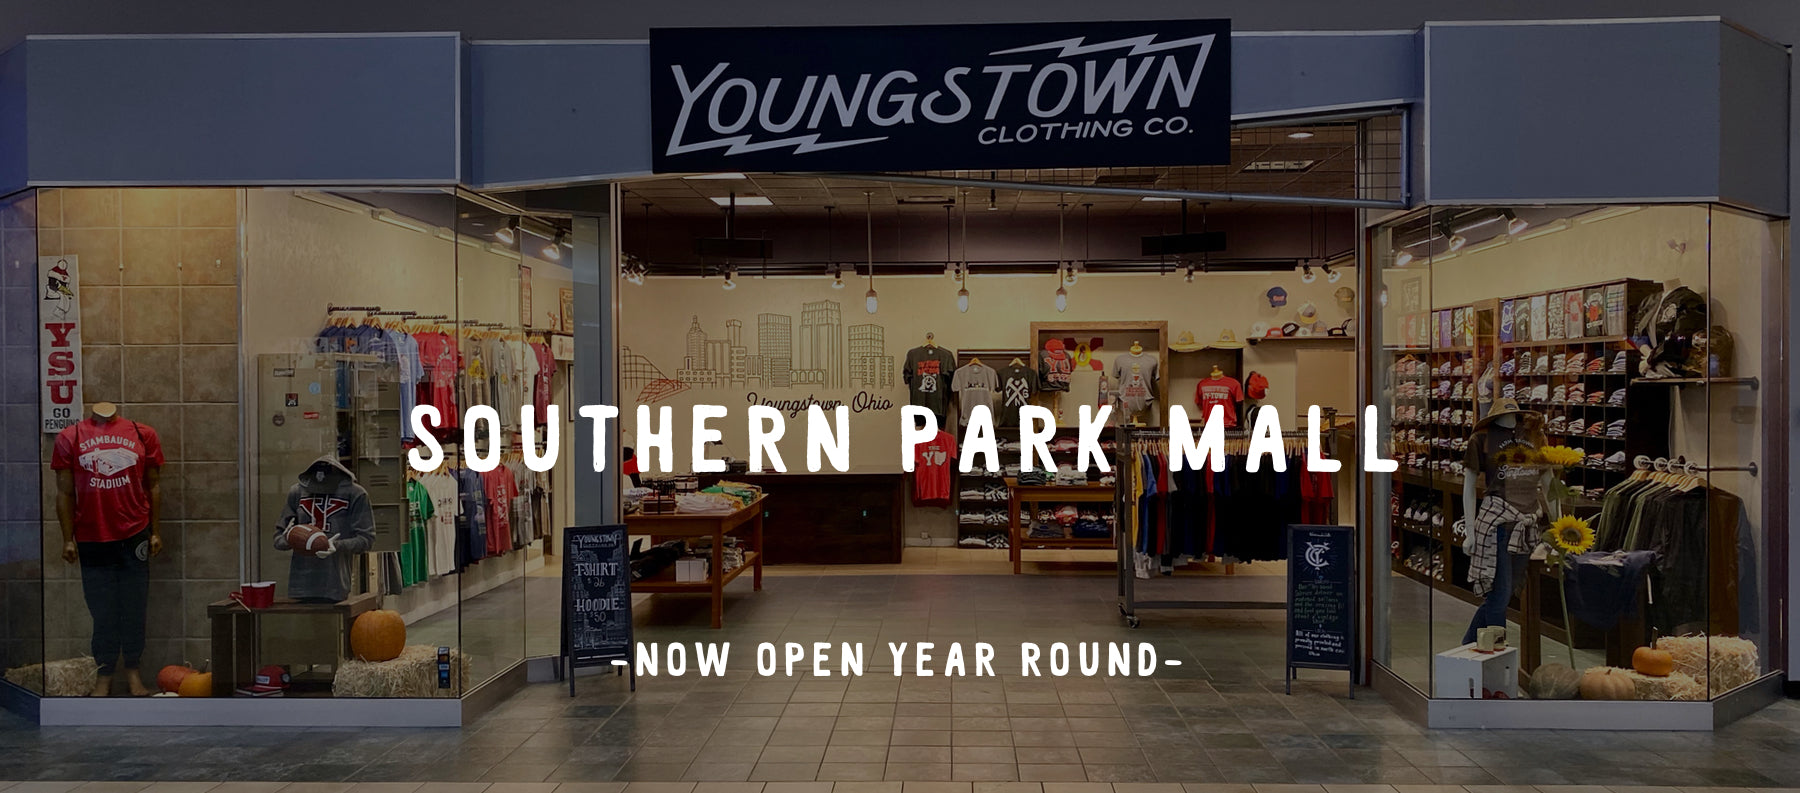 Youngstown Clothing Co Storefront